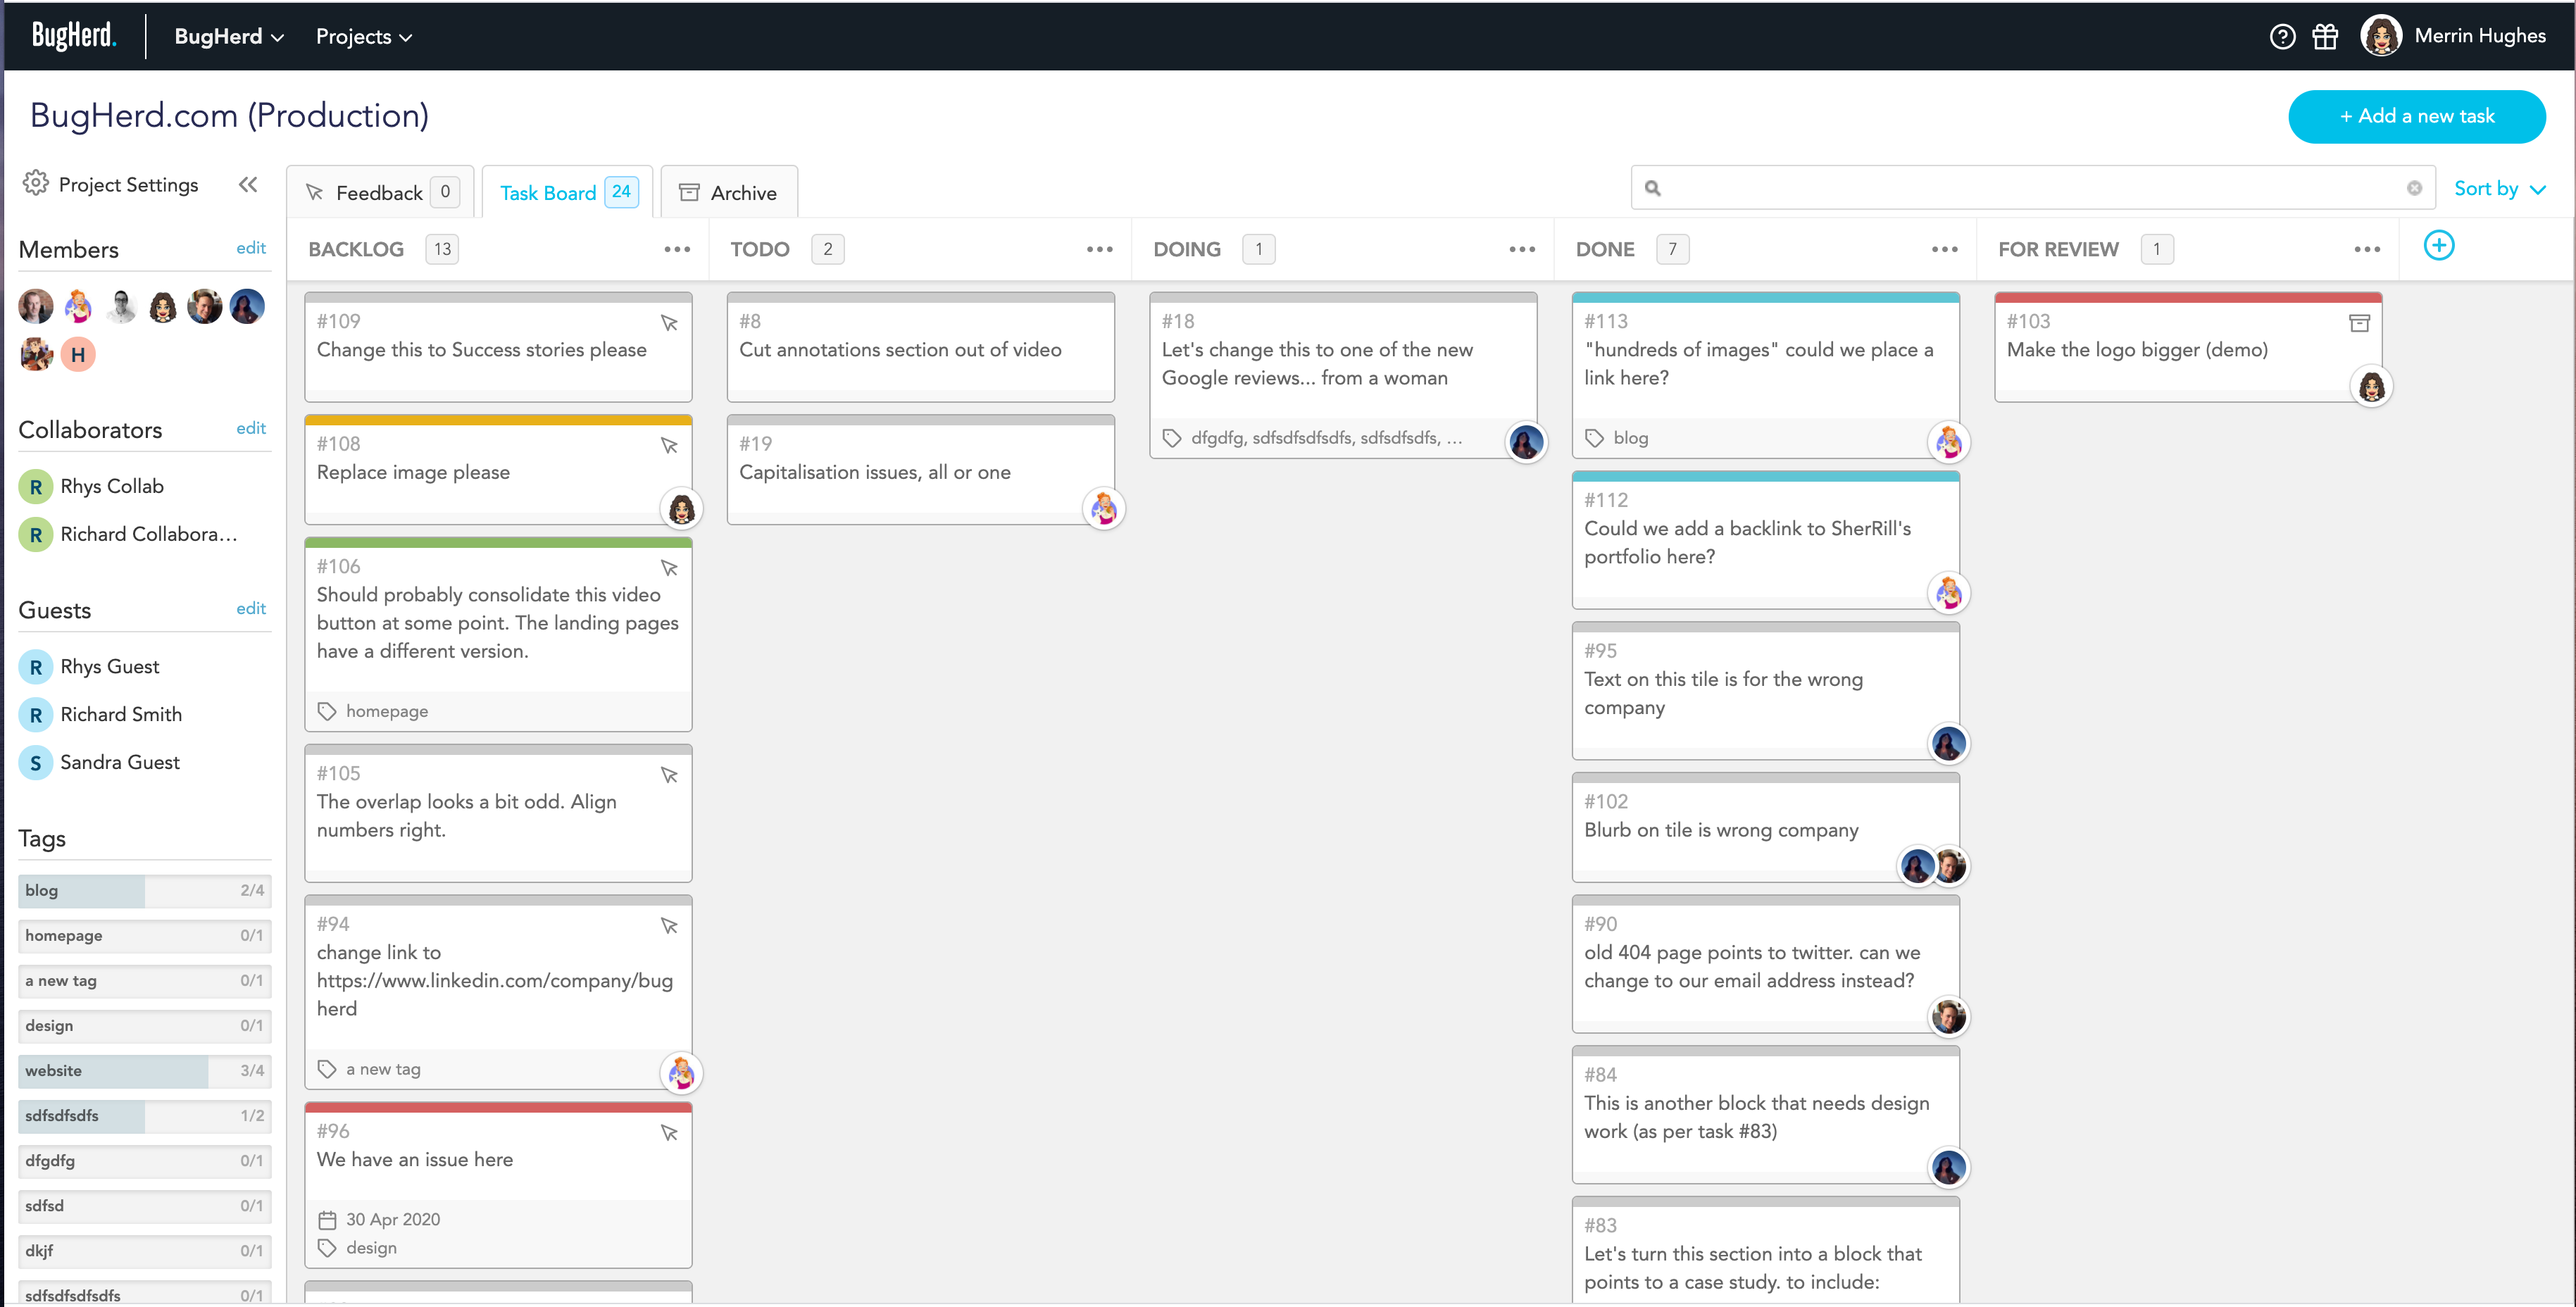 All feedback is collected automatically to your task board, which is customisable to your team workflow.